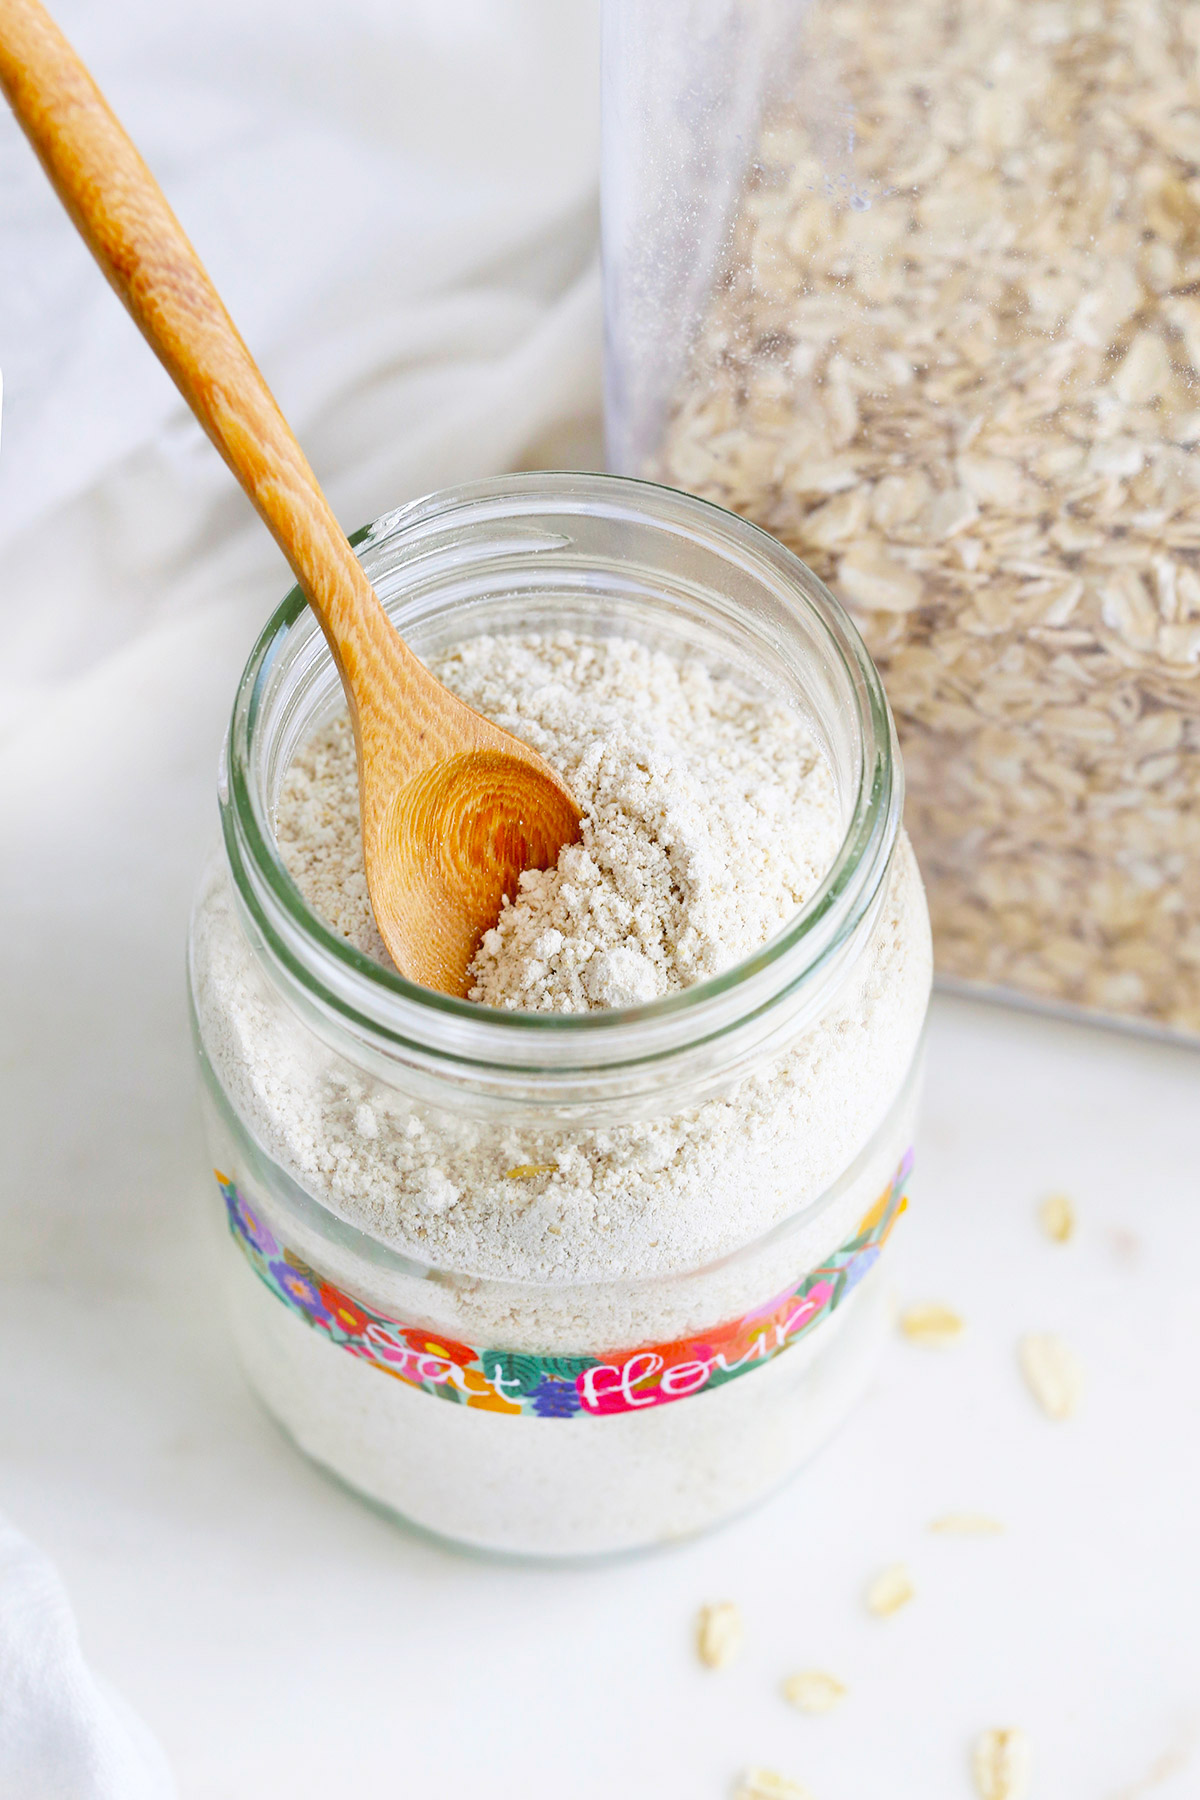 Oat Flour Tutorial from One Lovely Life